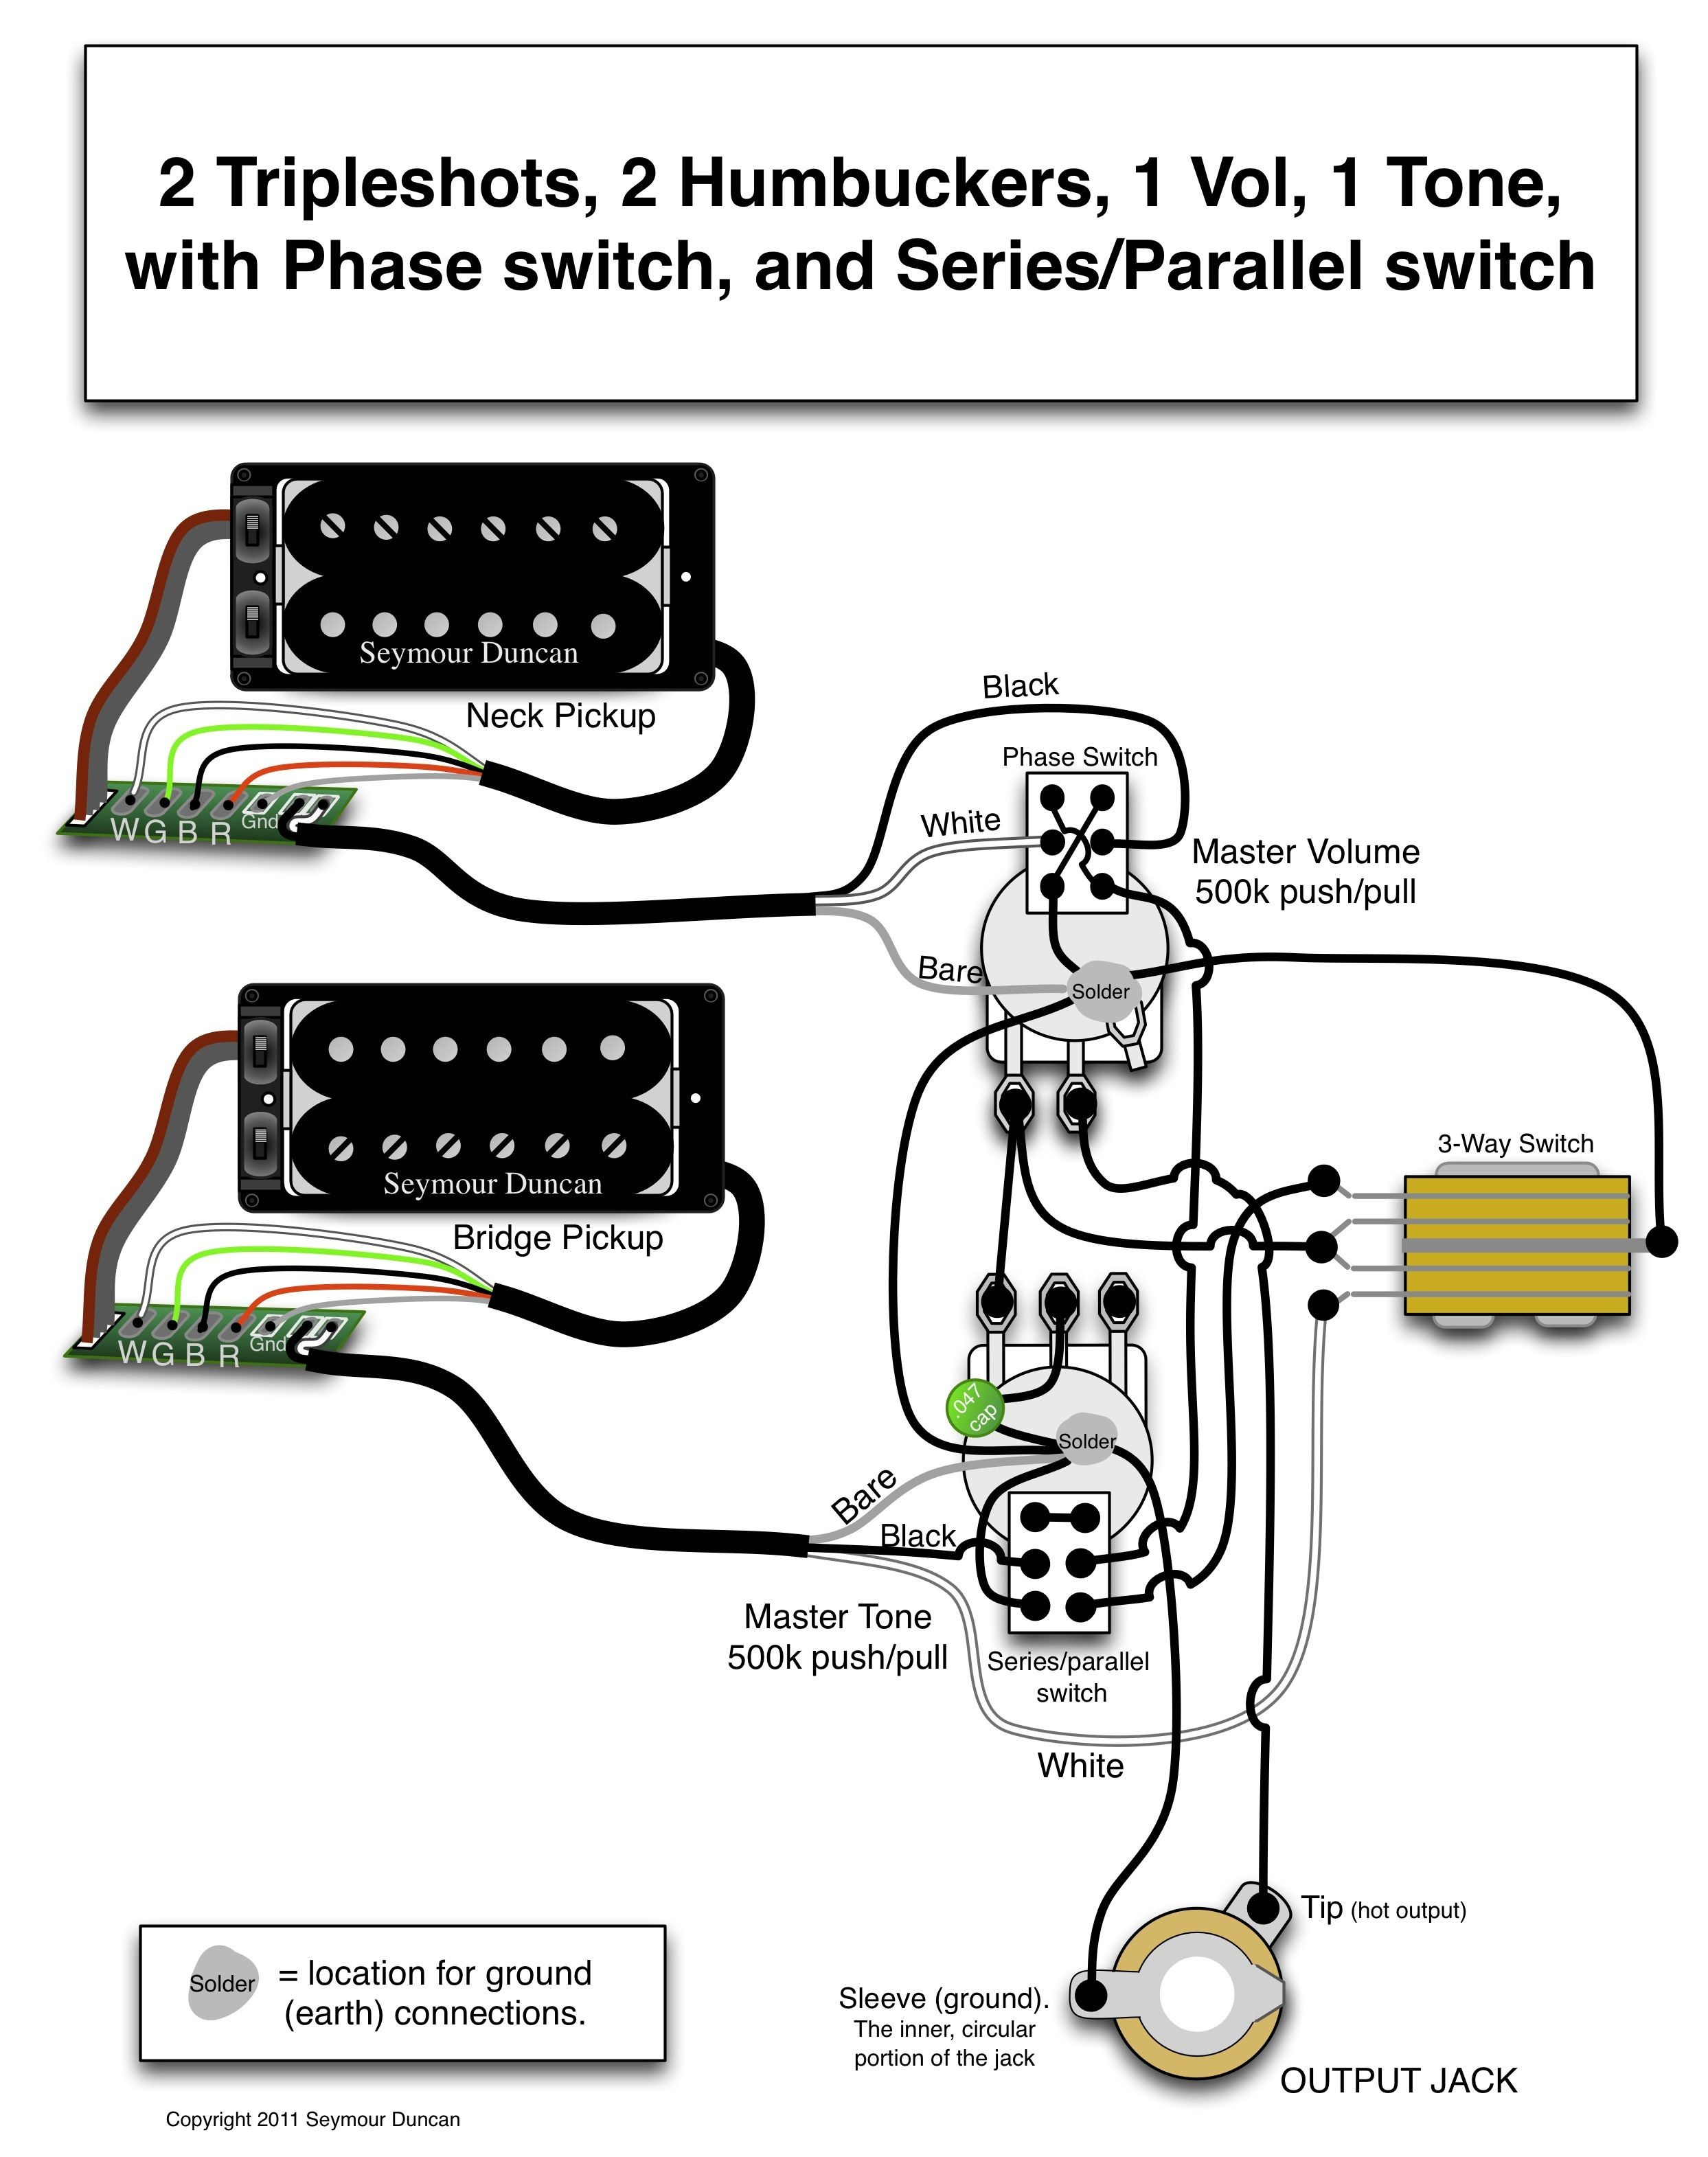 Gibson 3 Way Switch Wiring Seymour Duncan Wiring Diagram 2 Triple Shots 2 Humbuckers Of Gibson 3 Way Switch Wiring Wiring Diagrams for Guitars